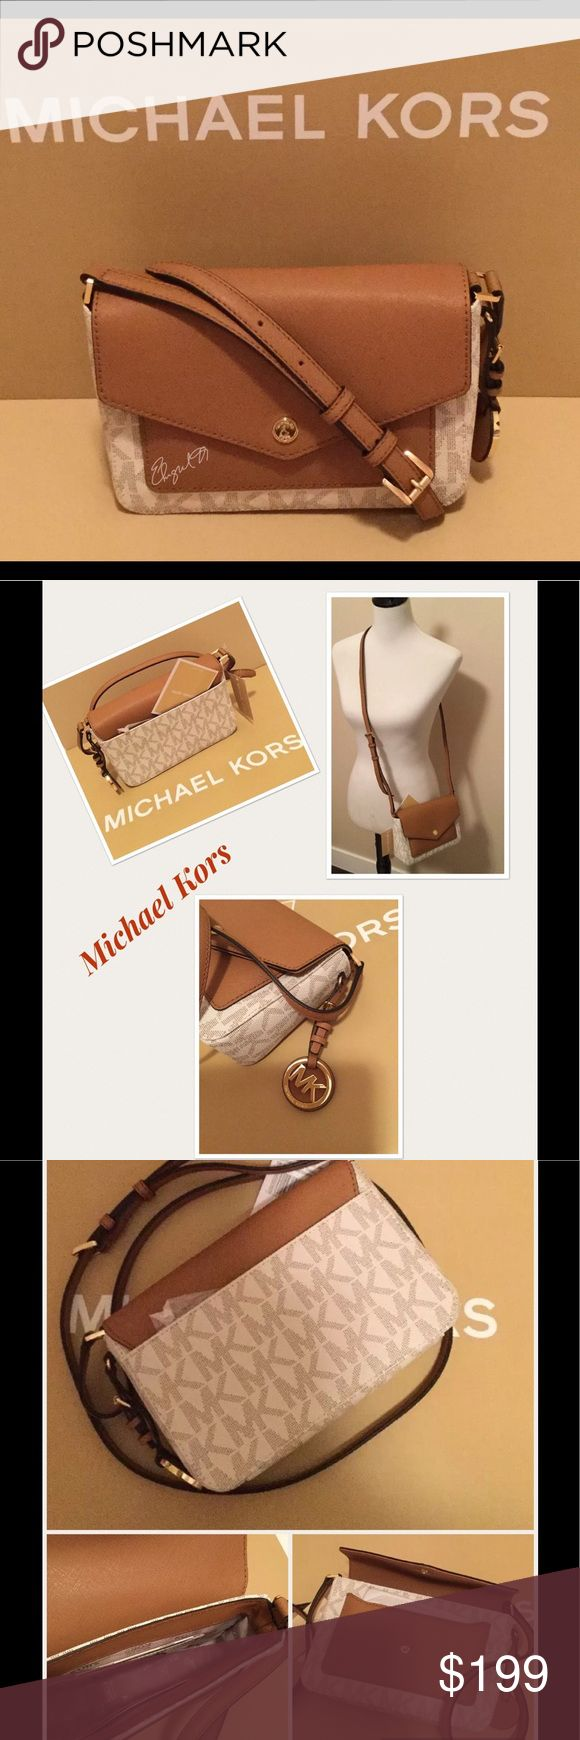 NWT MICHAEL KORS GREENWICH PVC SMALL CROSSBODY -Retail price $228.00  -STYLE# 35S7GG1C1B  -Color: Color Pocket Vanilla/Acorn  -MK Signature PVC w/ Saffiano leather trim  -goldtone hardware  -Small button Michael Kors logo on front  -MK medallion logo hang tag on one side  -Flap button closure  -Exterior full length slip pocket at the back & 1 envelope pocket under the flap  -Inside: 1 slip pocket & 3 credit card slots  -Mk signature fabric lining  -dimensions: 8'' (L) x 5.25'' (H) x 2.25''…